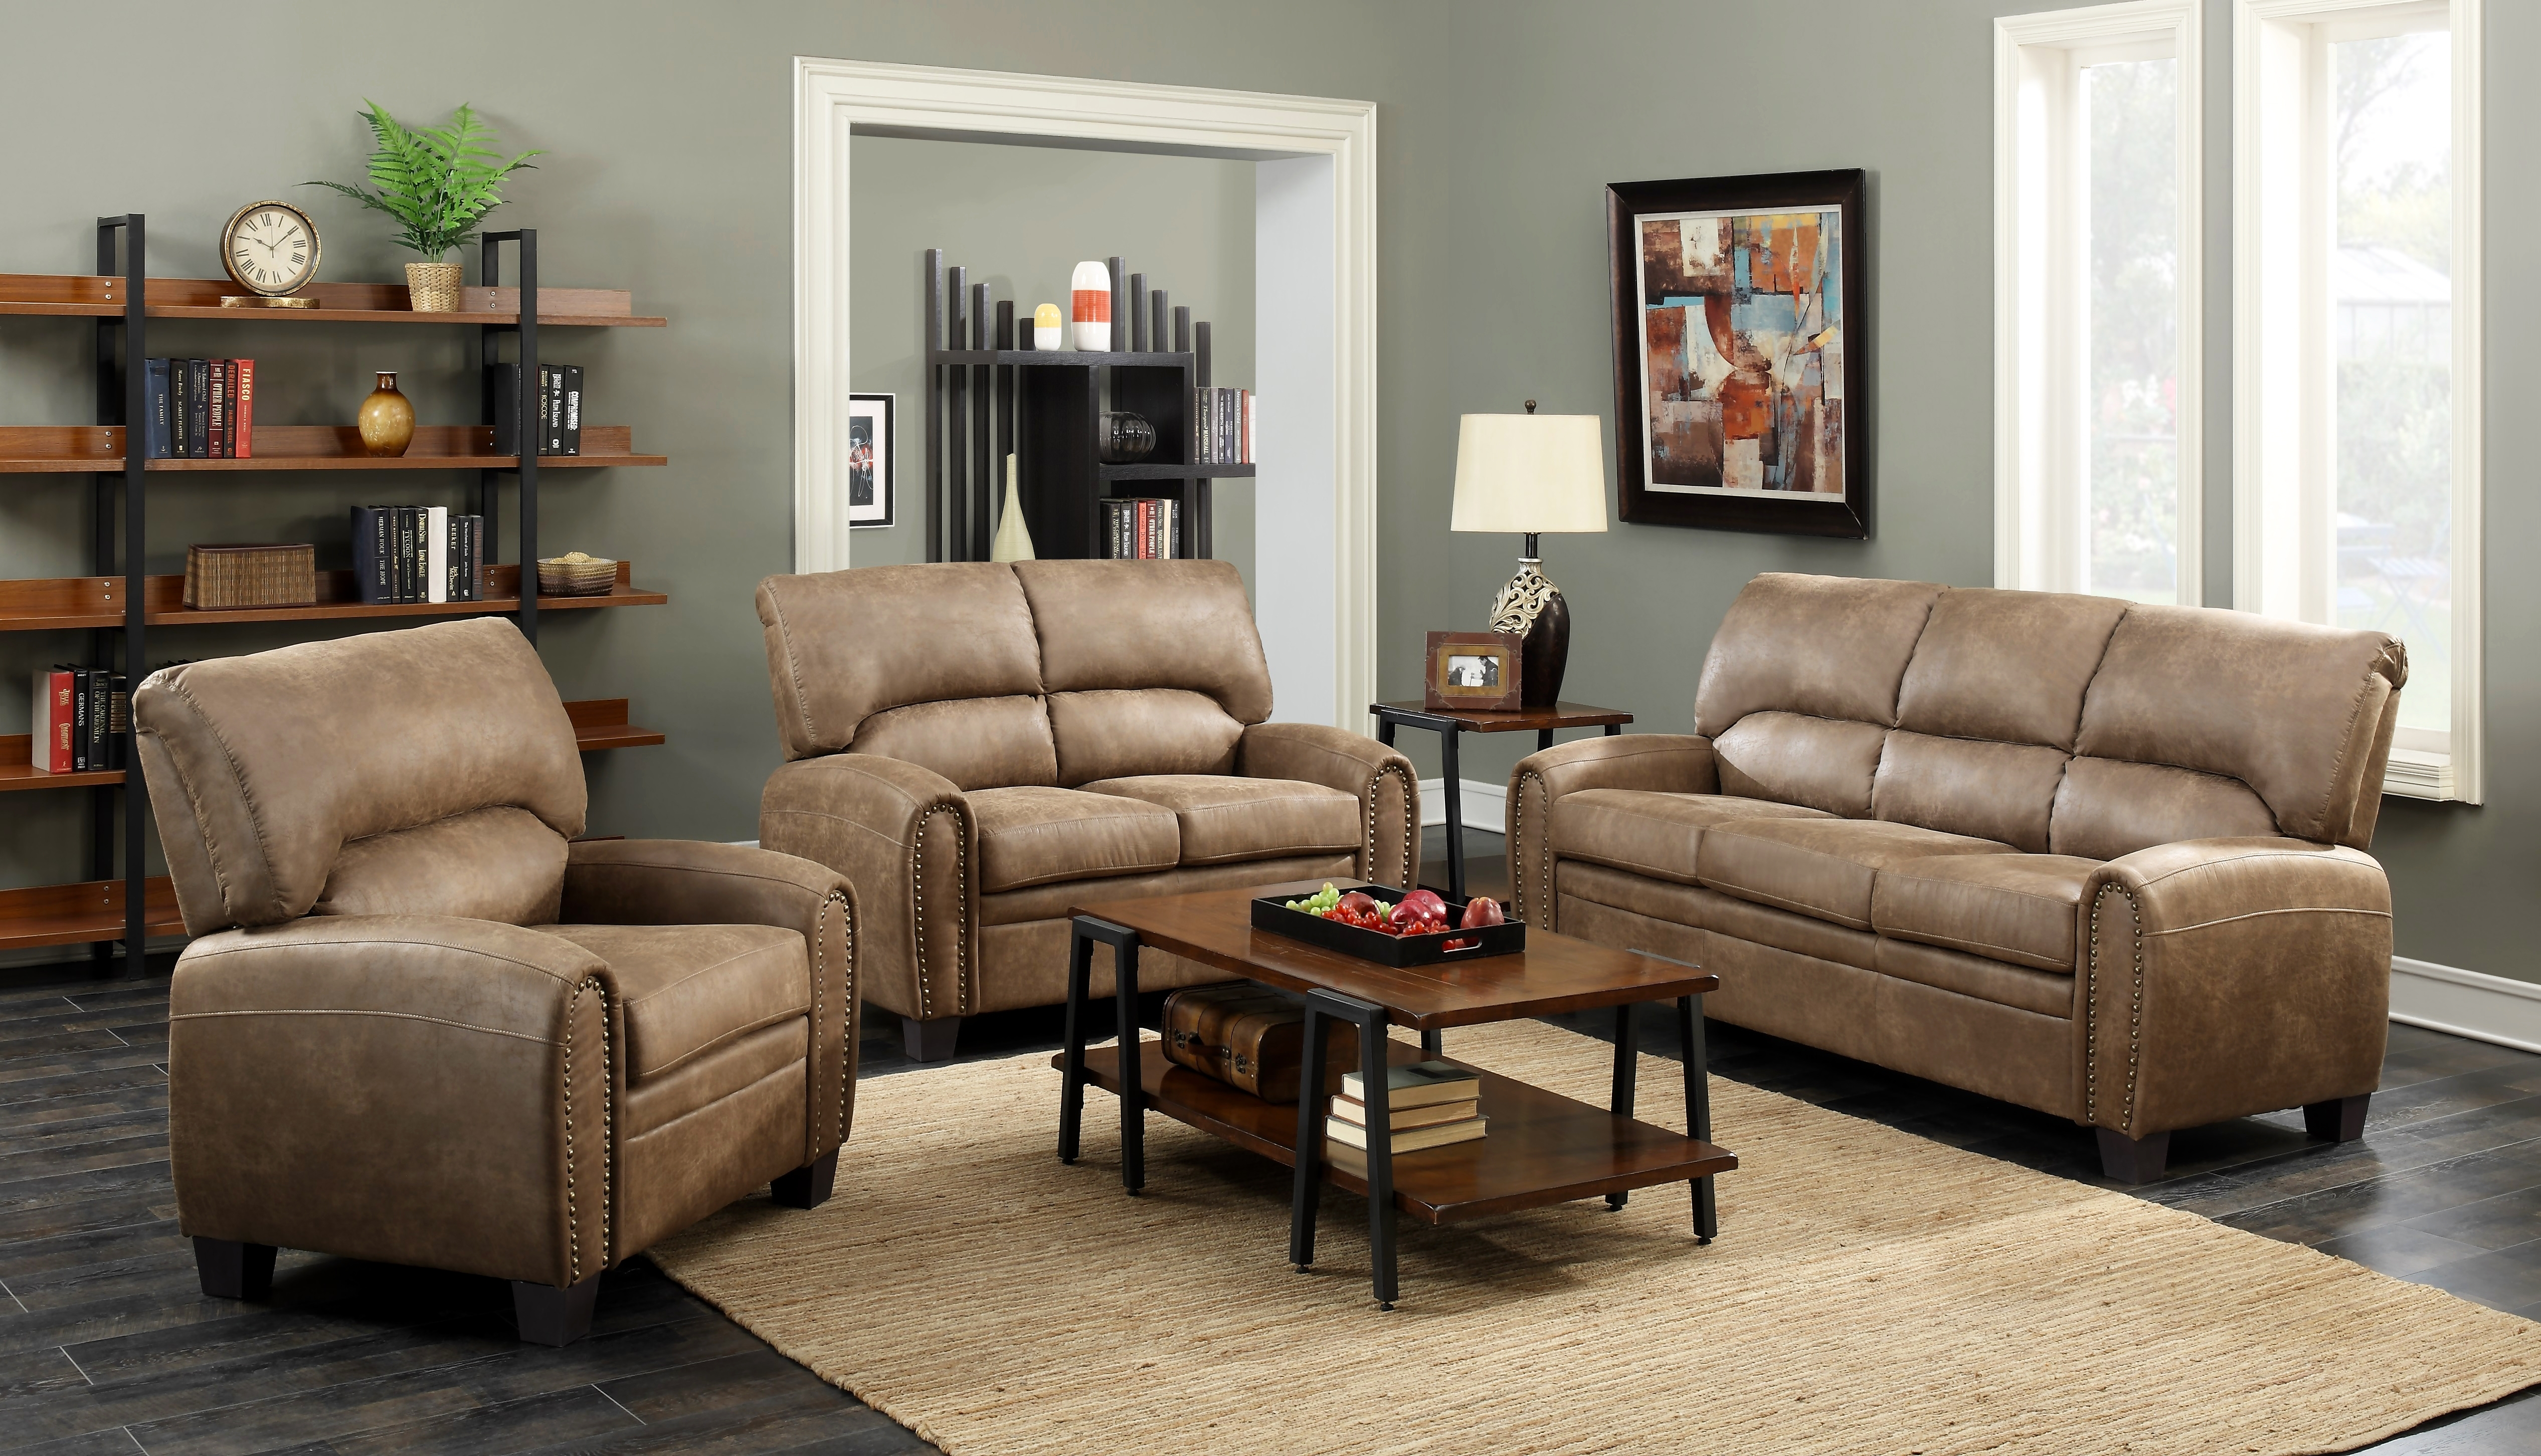 Vcf Sofa Chaise | Baci Living Room intended for Mcdade Graphite 2 Piece Sectionals With Raf Chaise (Image 27 of 30)